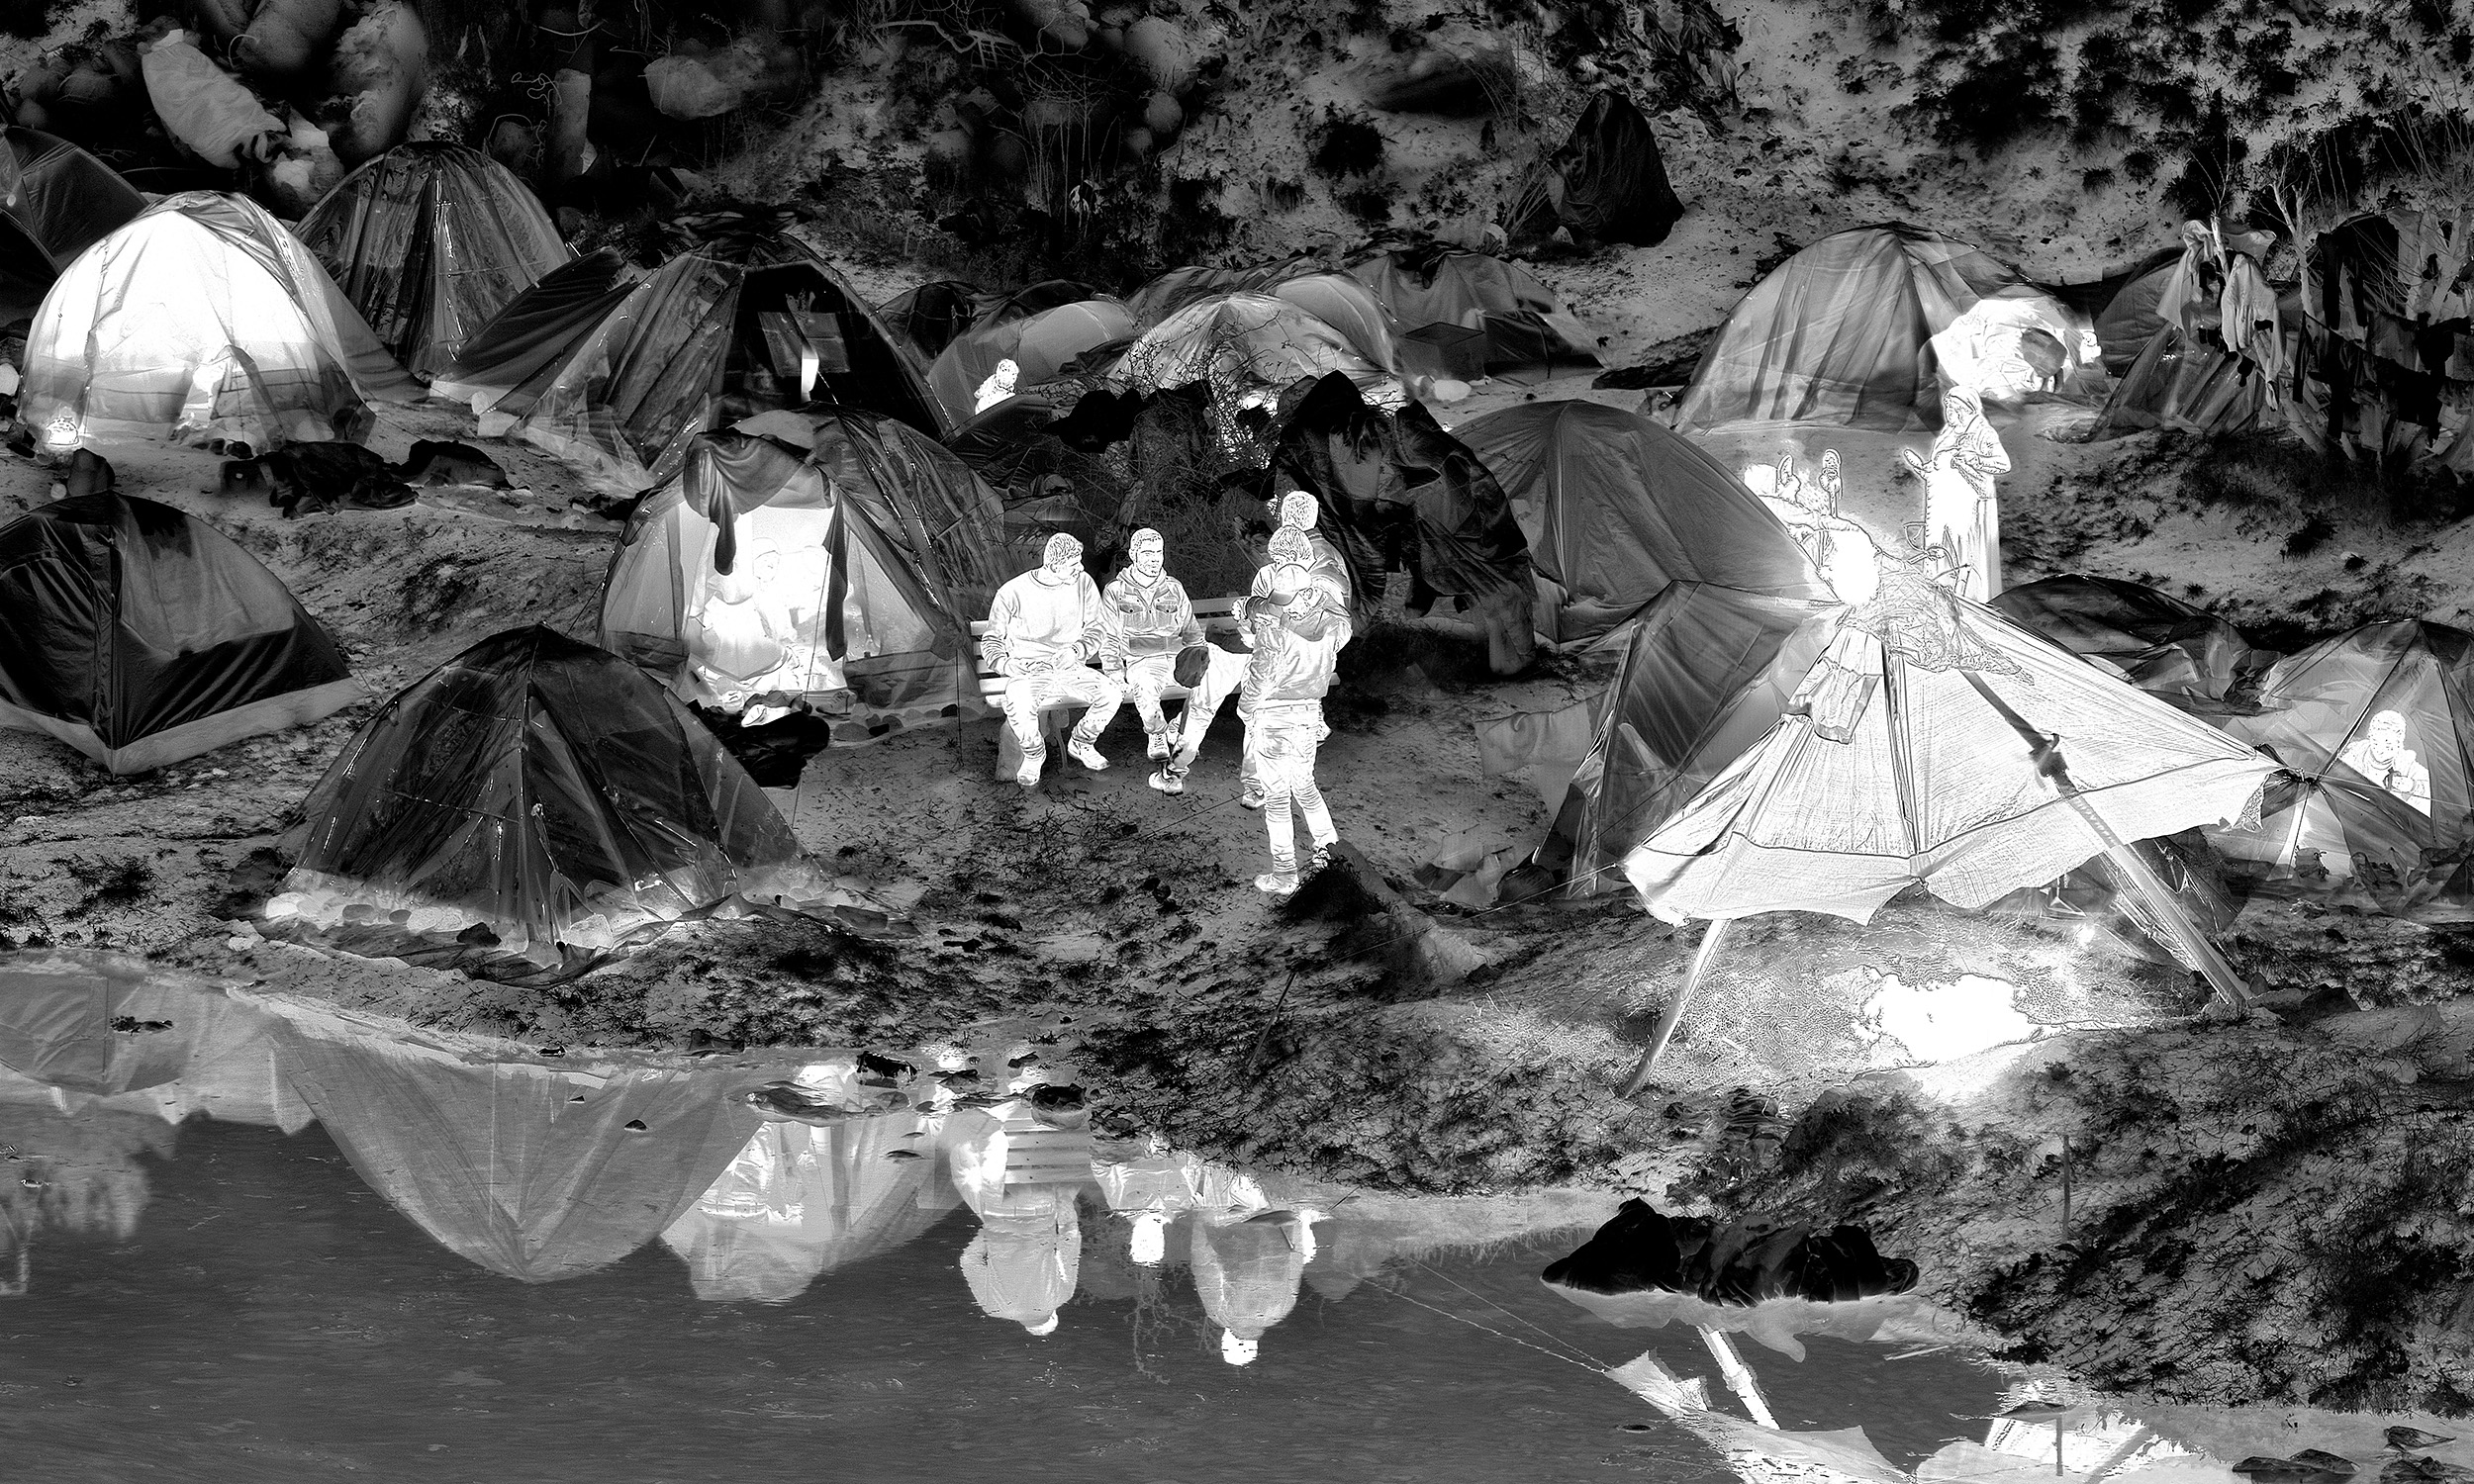 Richard Mosse, Detail from <em>Idomeni Camp</em>, Greece, 2016, digital C print on metallic paper, 40.7 x 120 inches